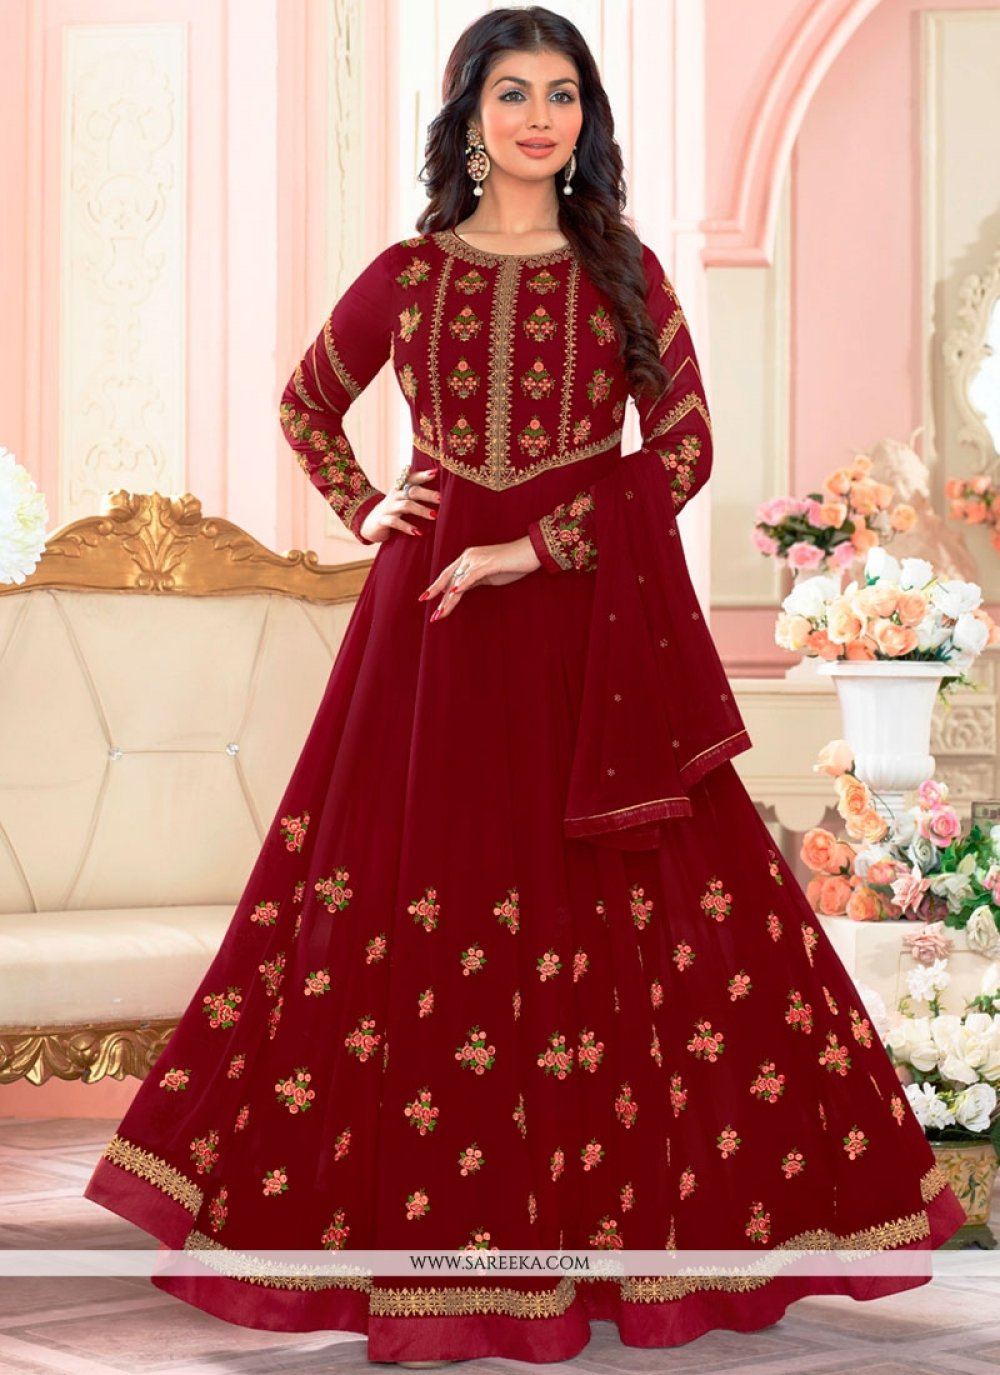 Ayesha Takia Faux Georgette Resham Work Maroon Floor Length Anarkali Suit